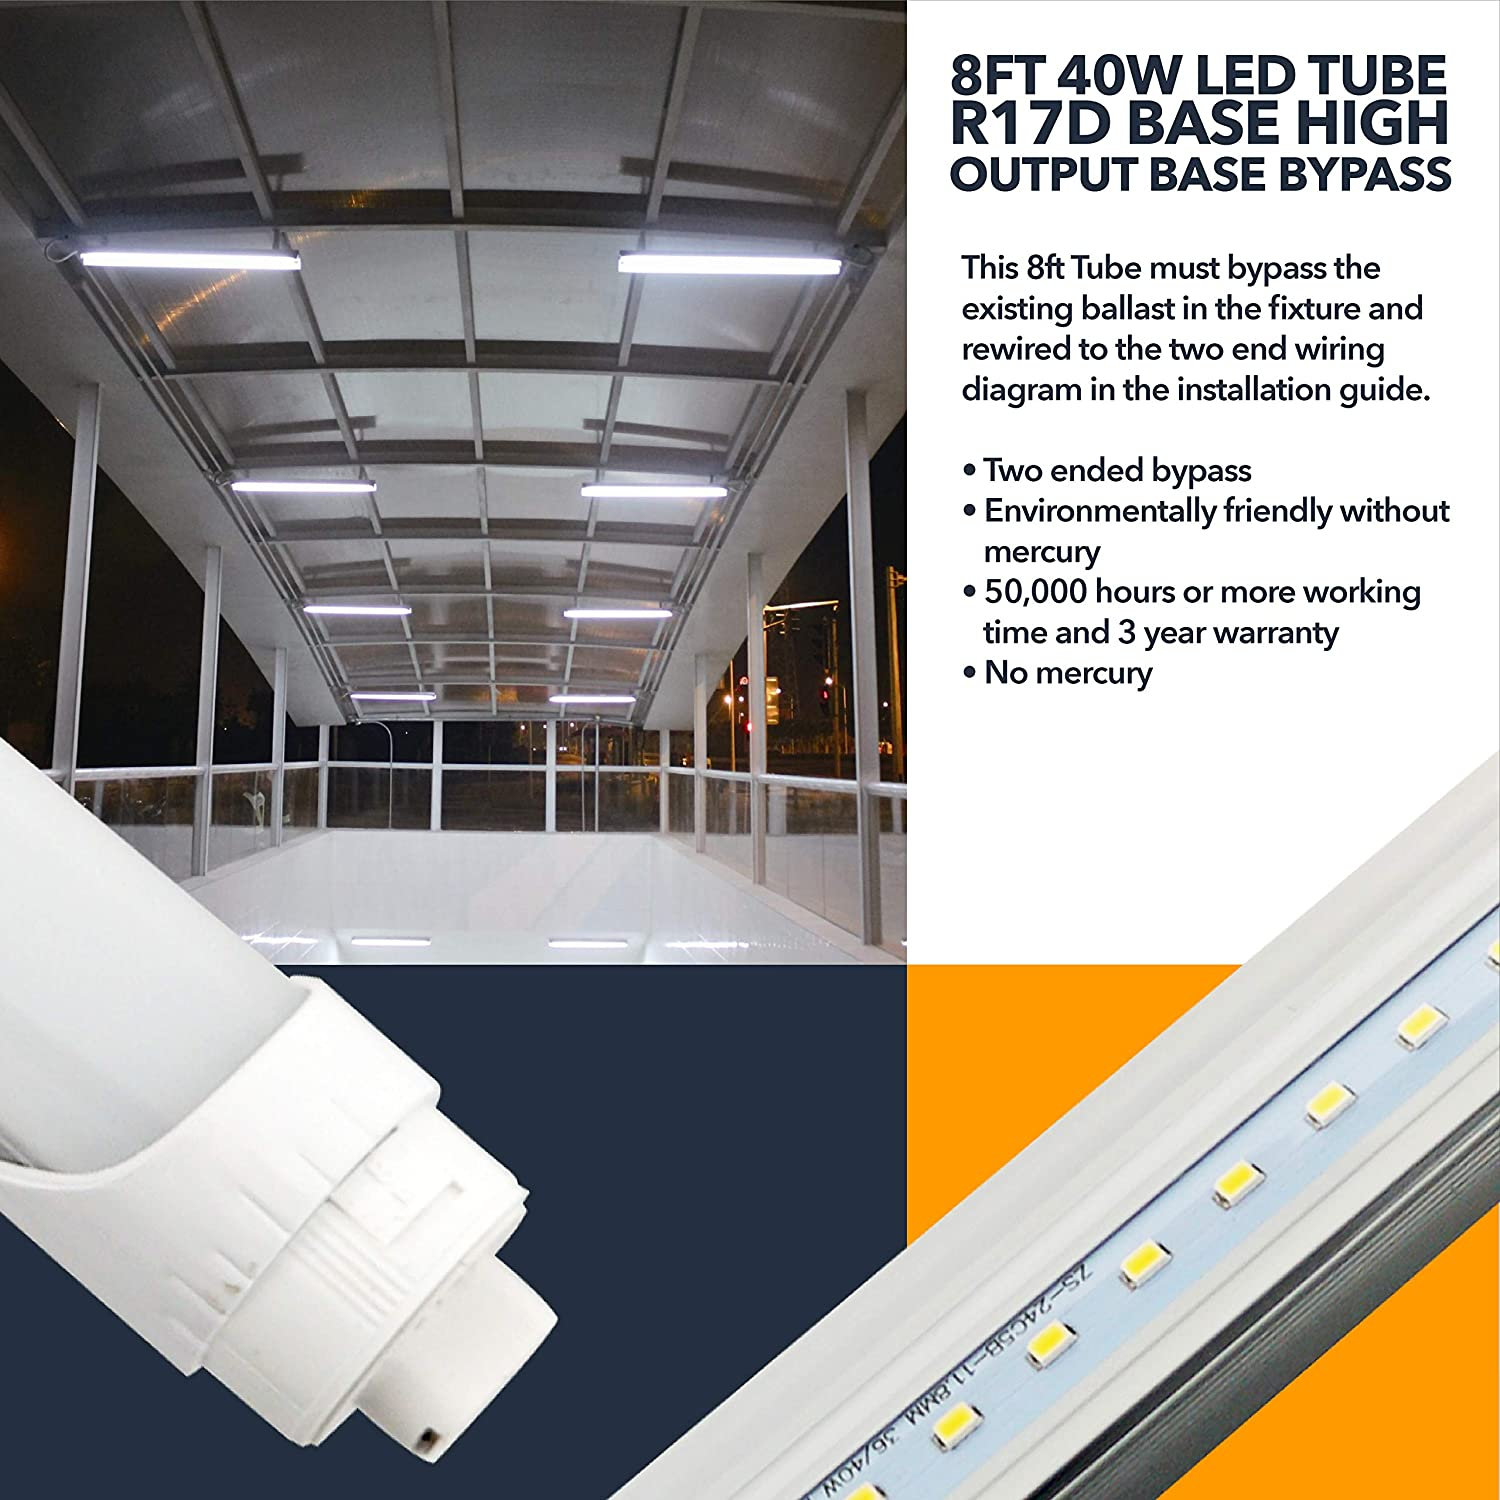 8ft Led Tube Light R17d Base High Output Warehouse Two Fixture Wiring Diagram Ended Bypass 4400 Lumens Residential Or Commercial Garage Workshop